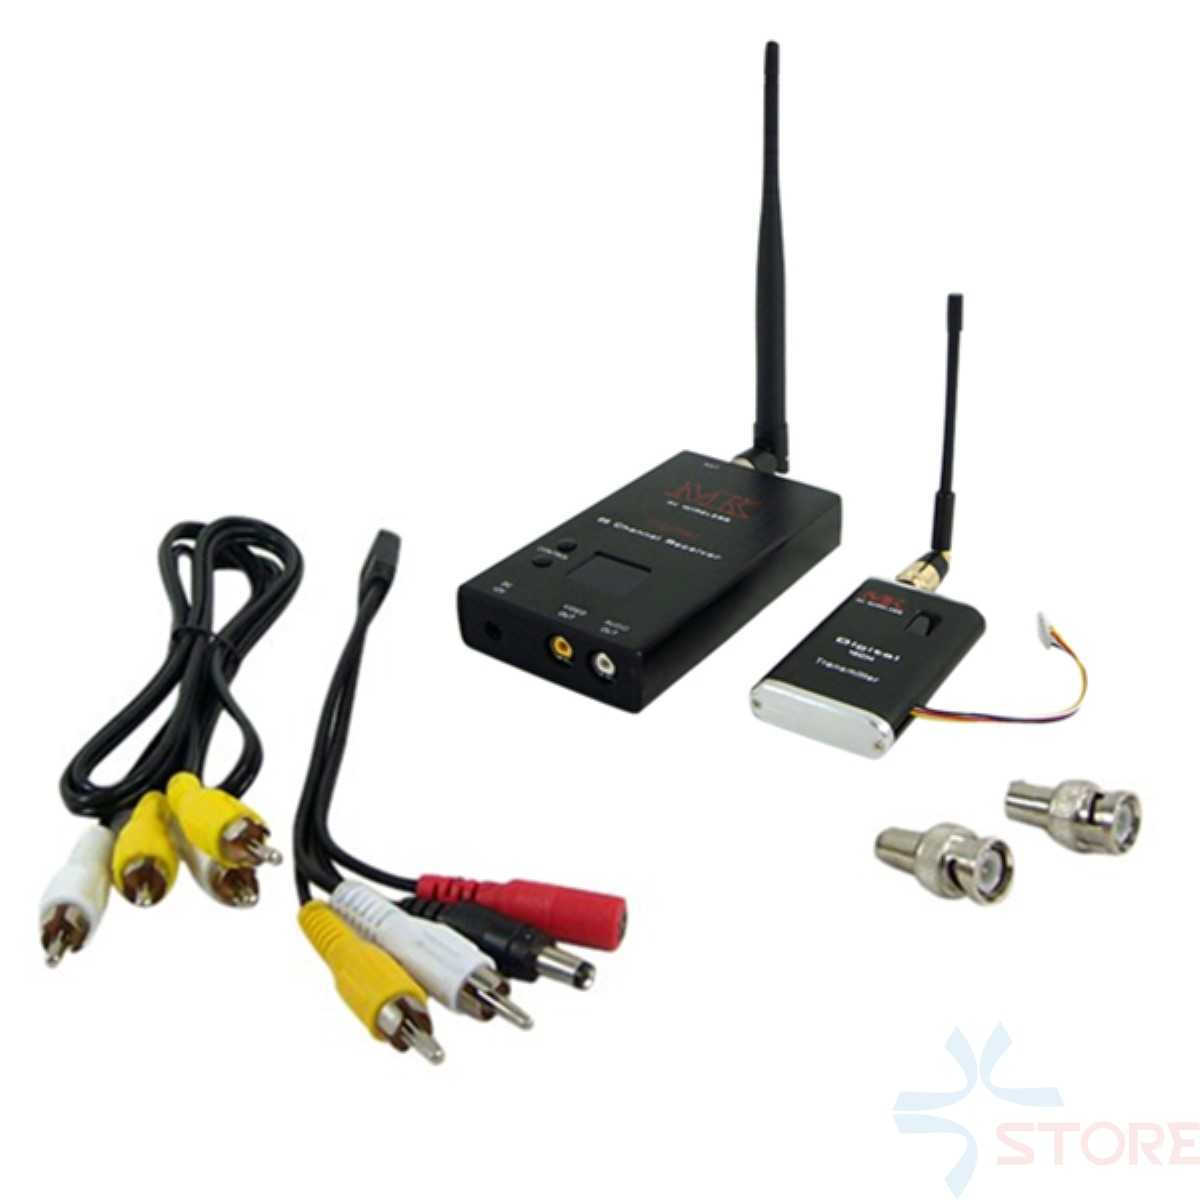 MK 1.2G Hz 15CH 2W 2000mW FPV 1-5km Distance Wireless Audio Video <font><b>CCTV</b></font> Transmitter Receiver For FPV PHOTOGRAPHY